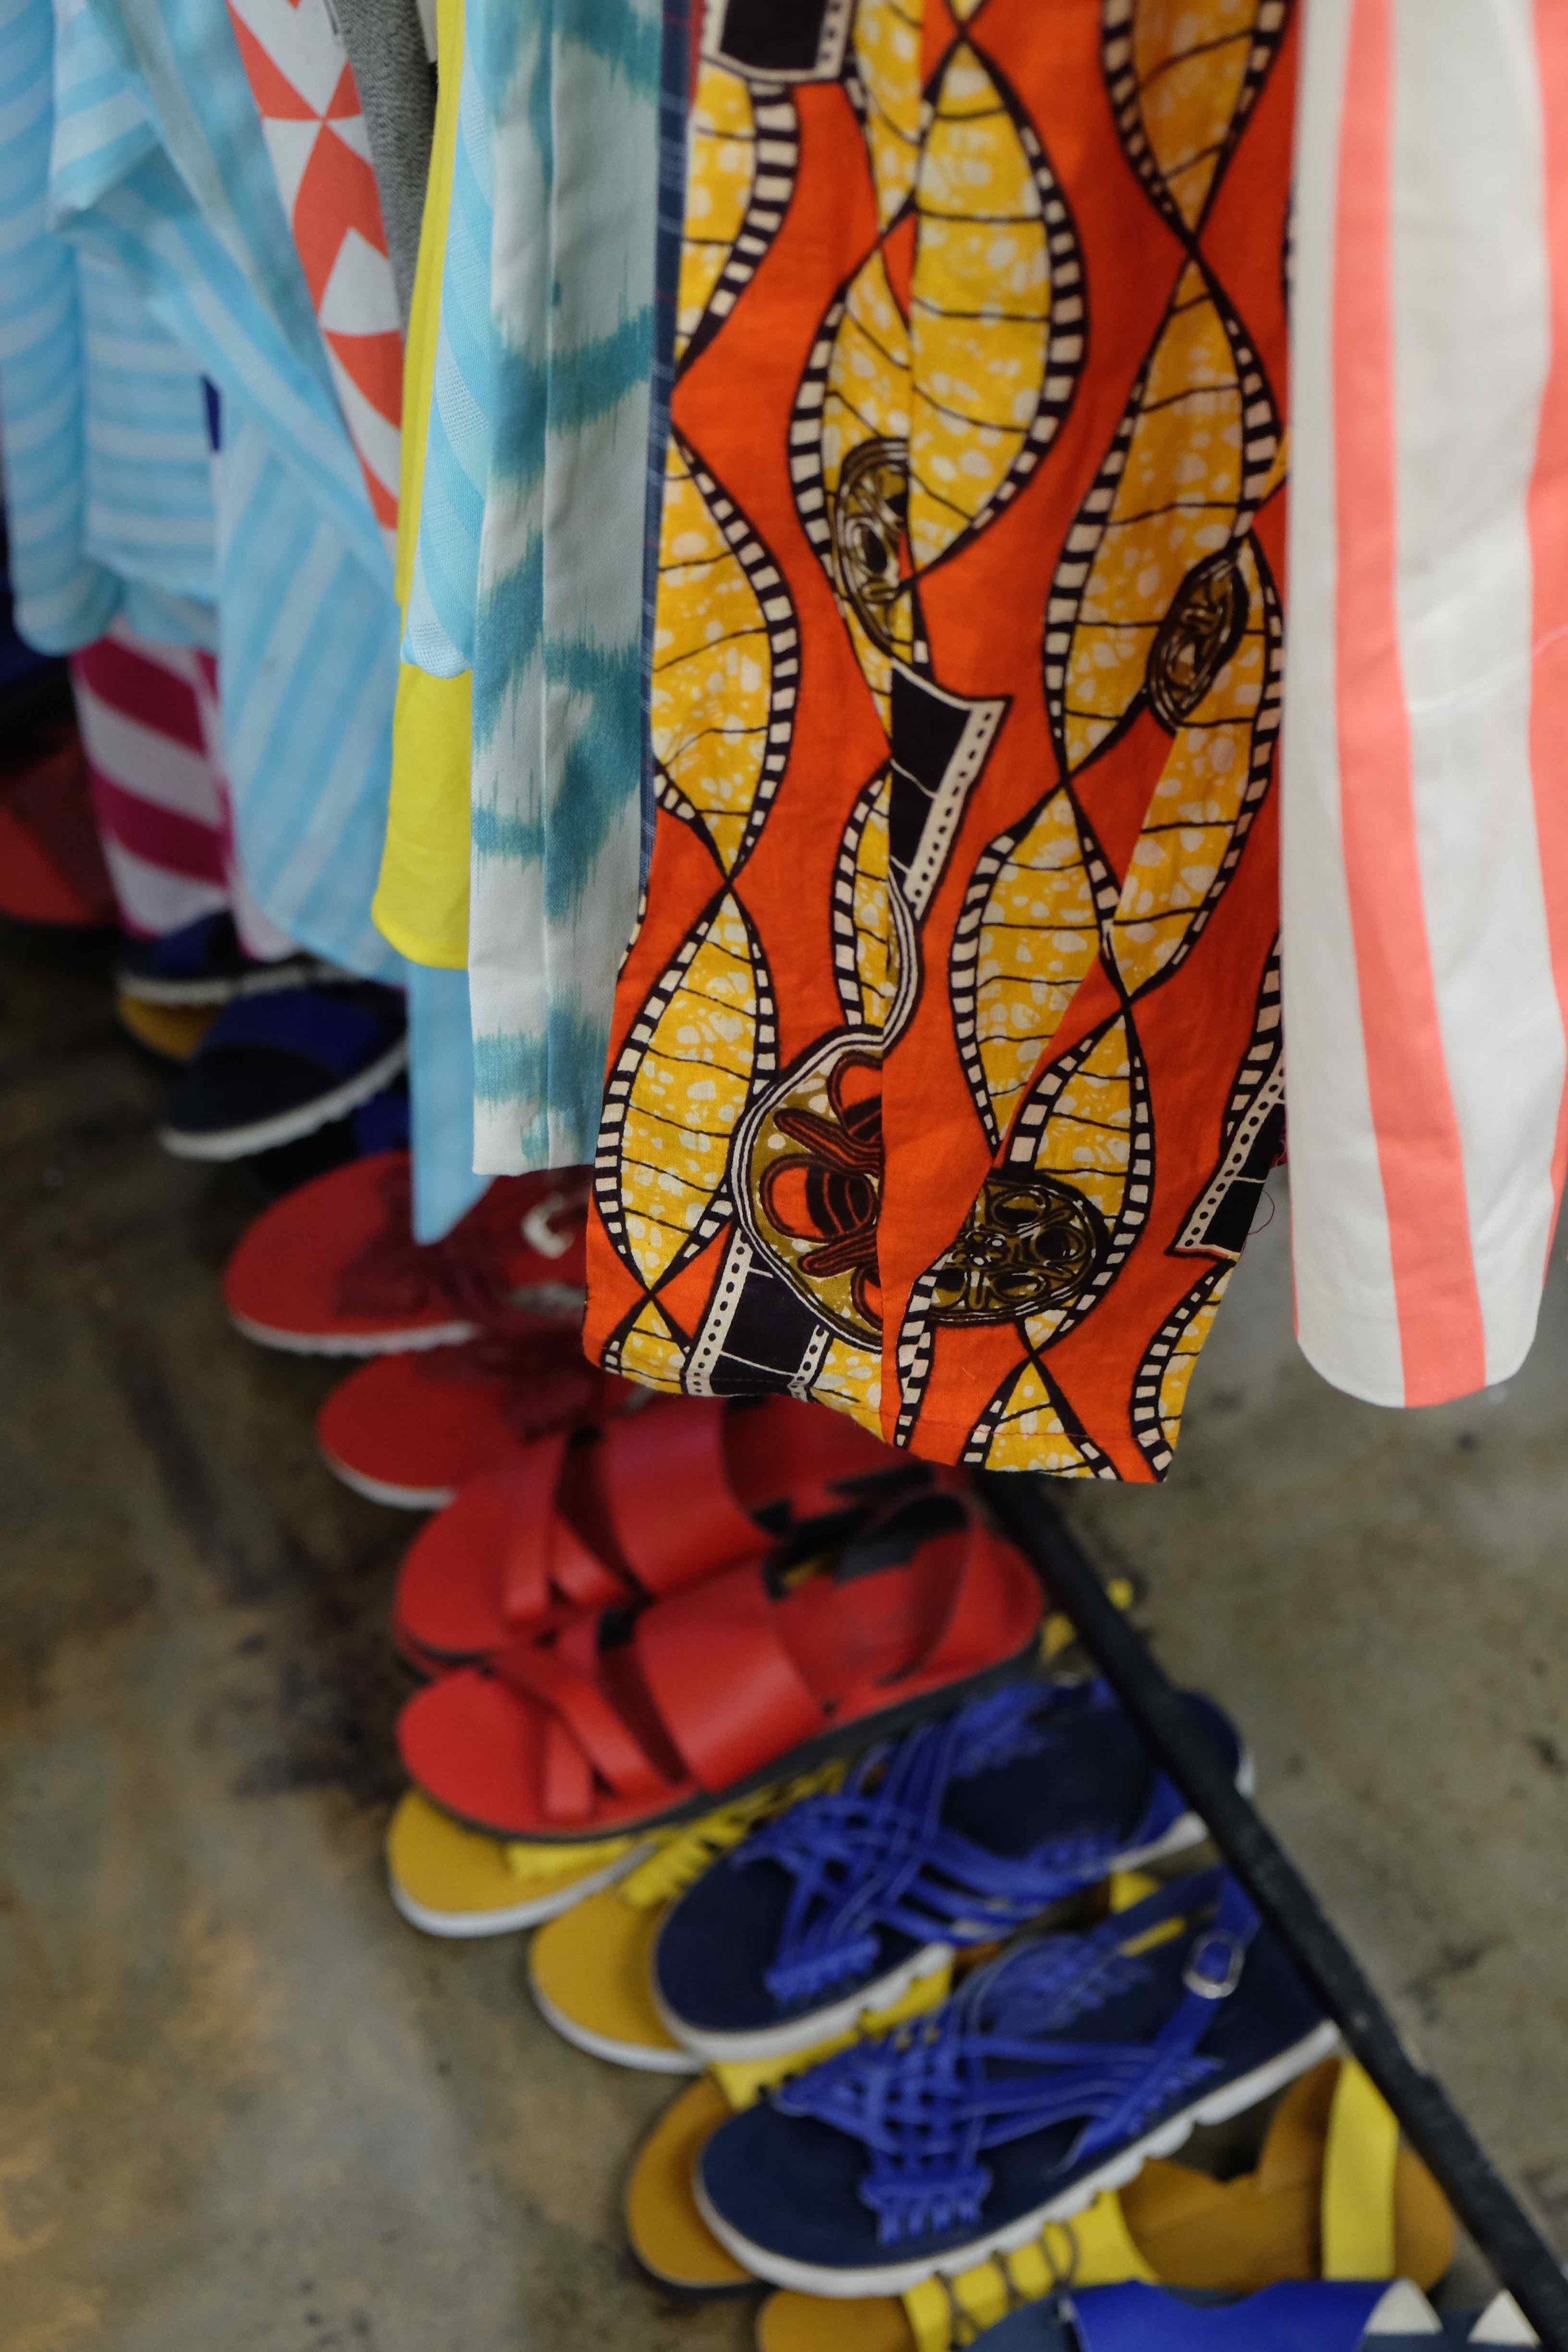 Mzukisi Mbane makes beautiful garments as well as shoes and accessories with a distinct African feeling. You can find him on the ground floor in studio A3 - or on Instagram - @imprint_za